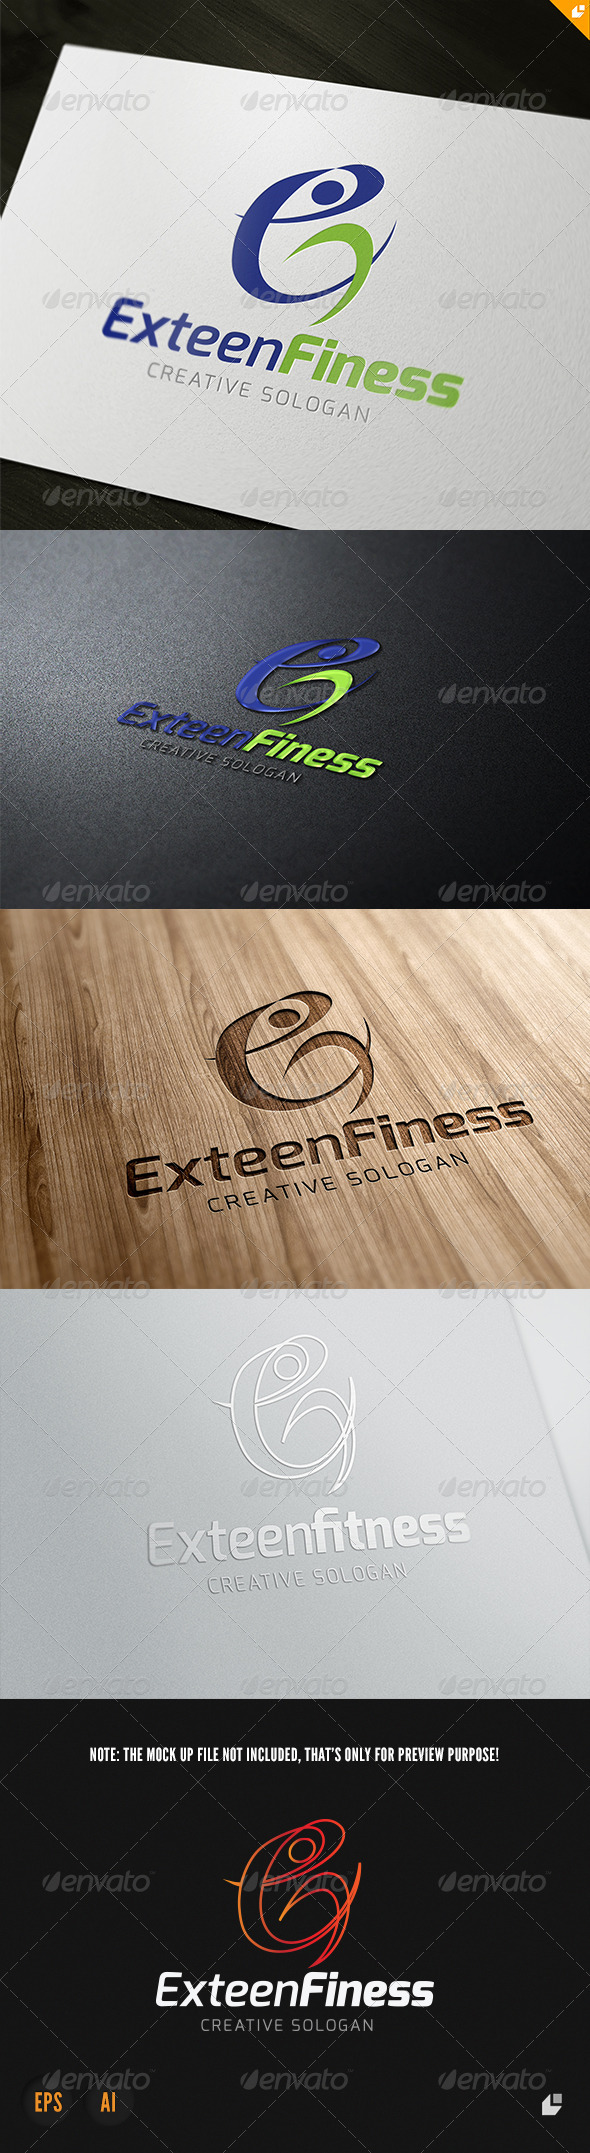 GraphicRiver Exteen Fitness Logo 3901586